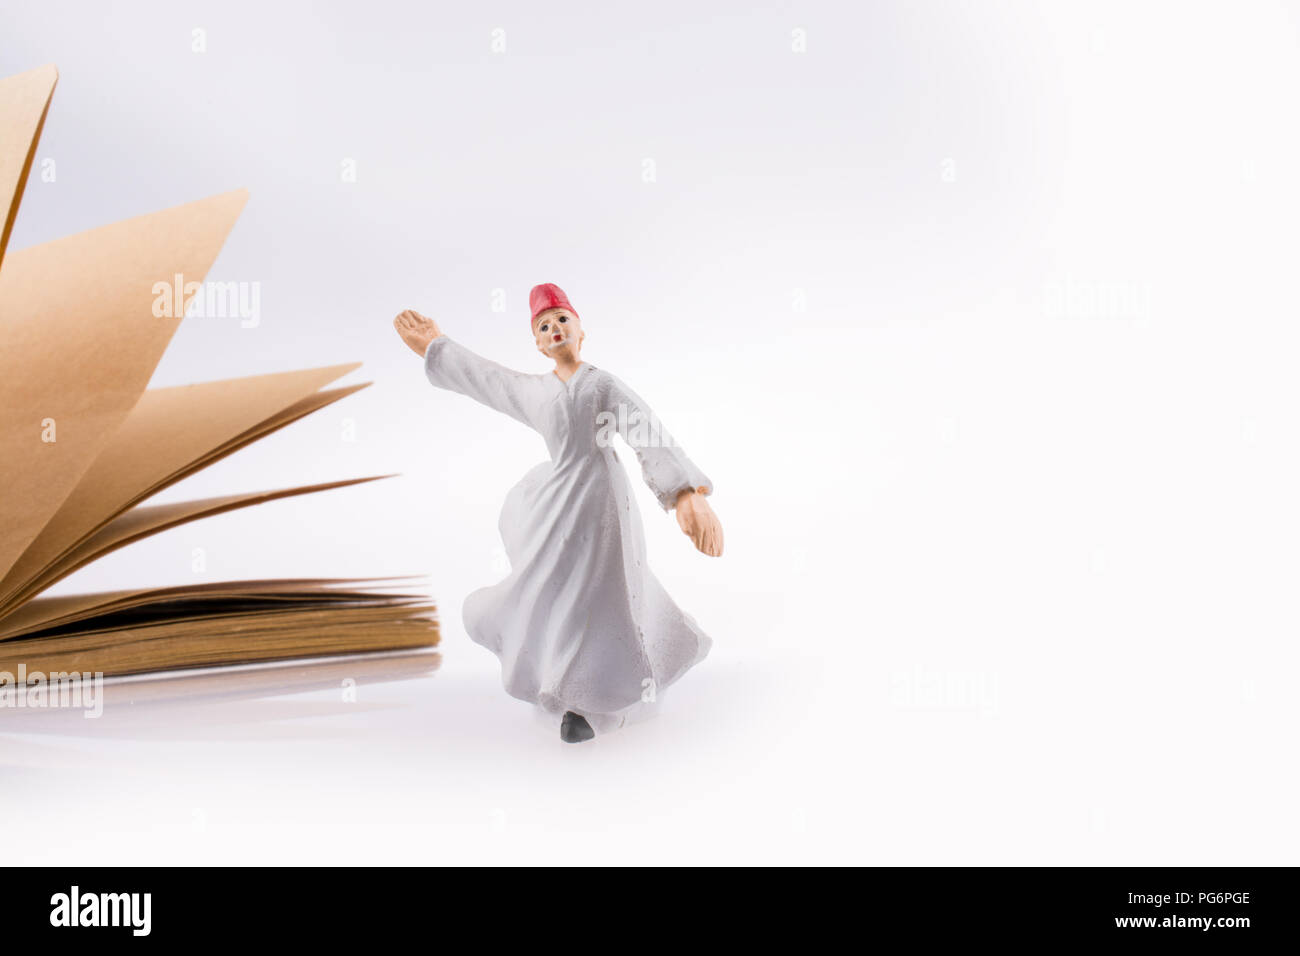 Sufi Dervish on a notebook on white background - Stock Image